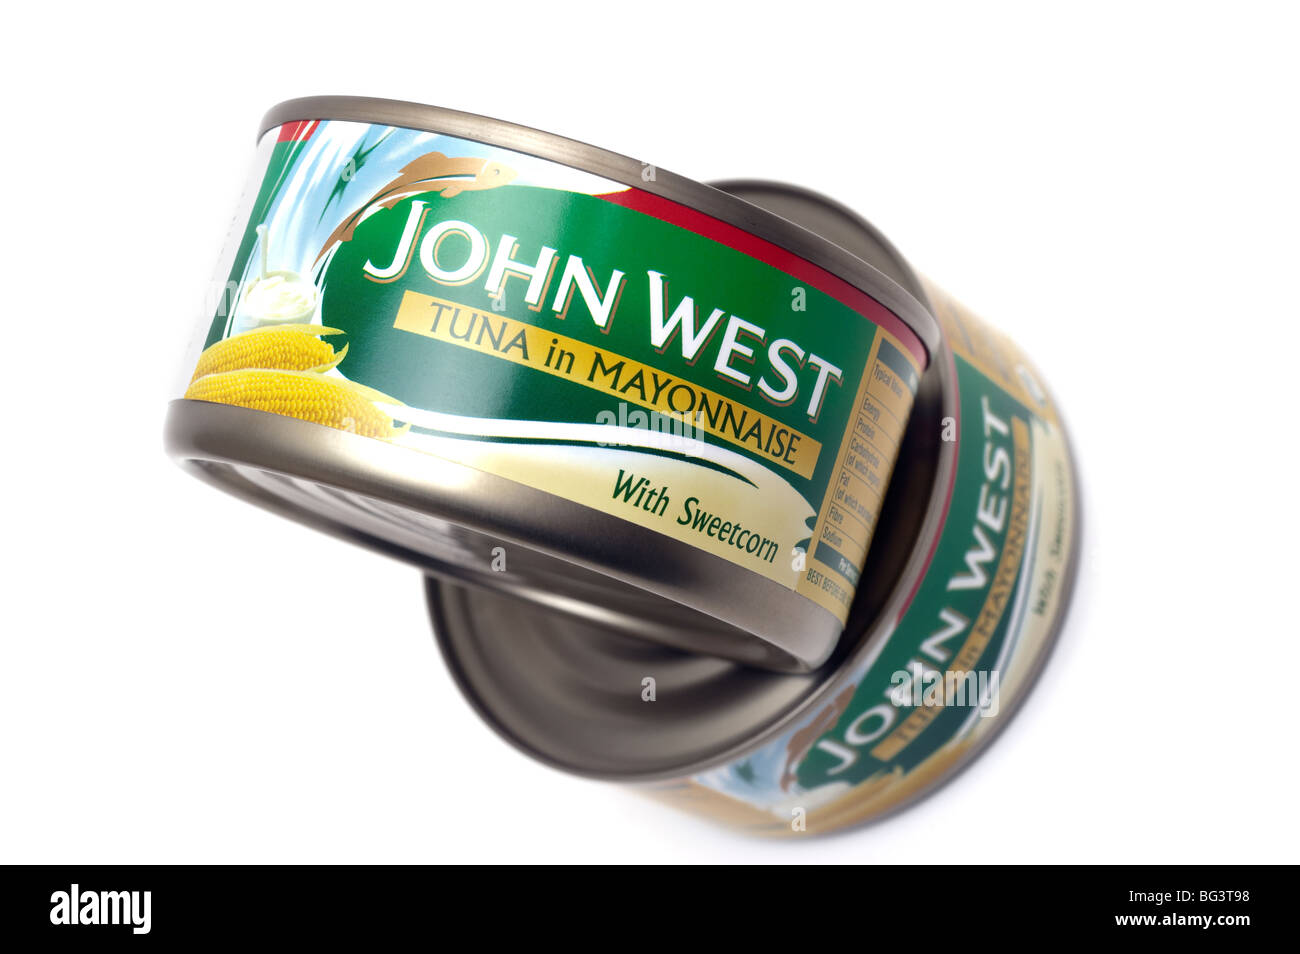 Two tins of 'John West ' Tuna in Mayonnaise with sweetcorn - Stock Image